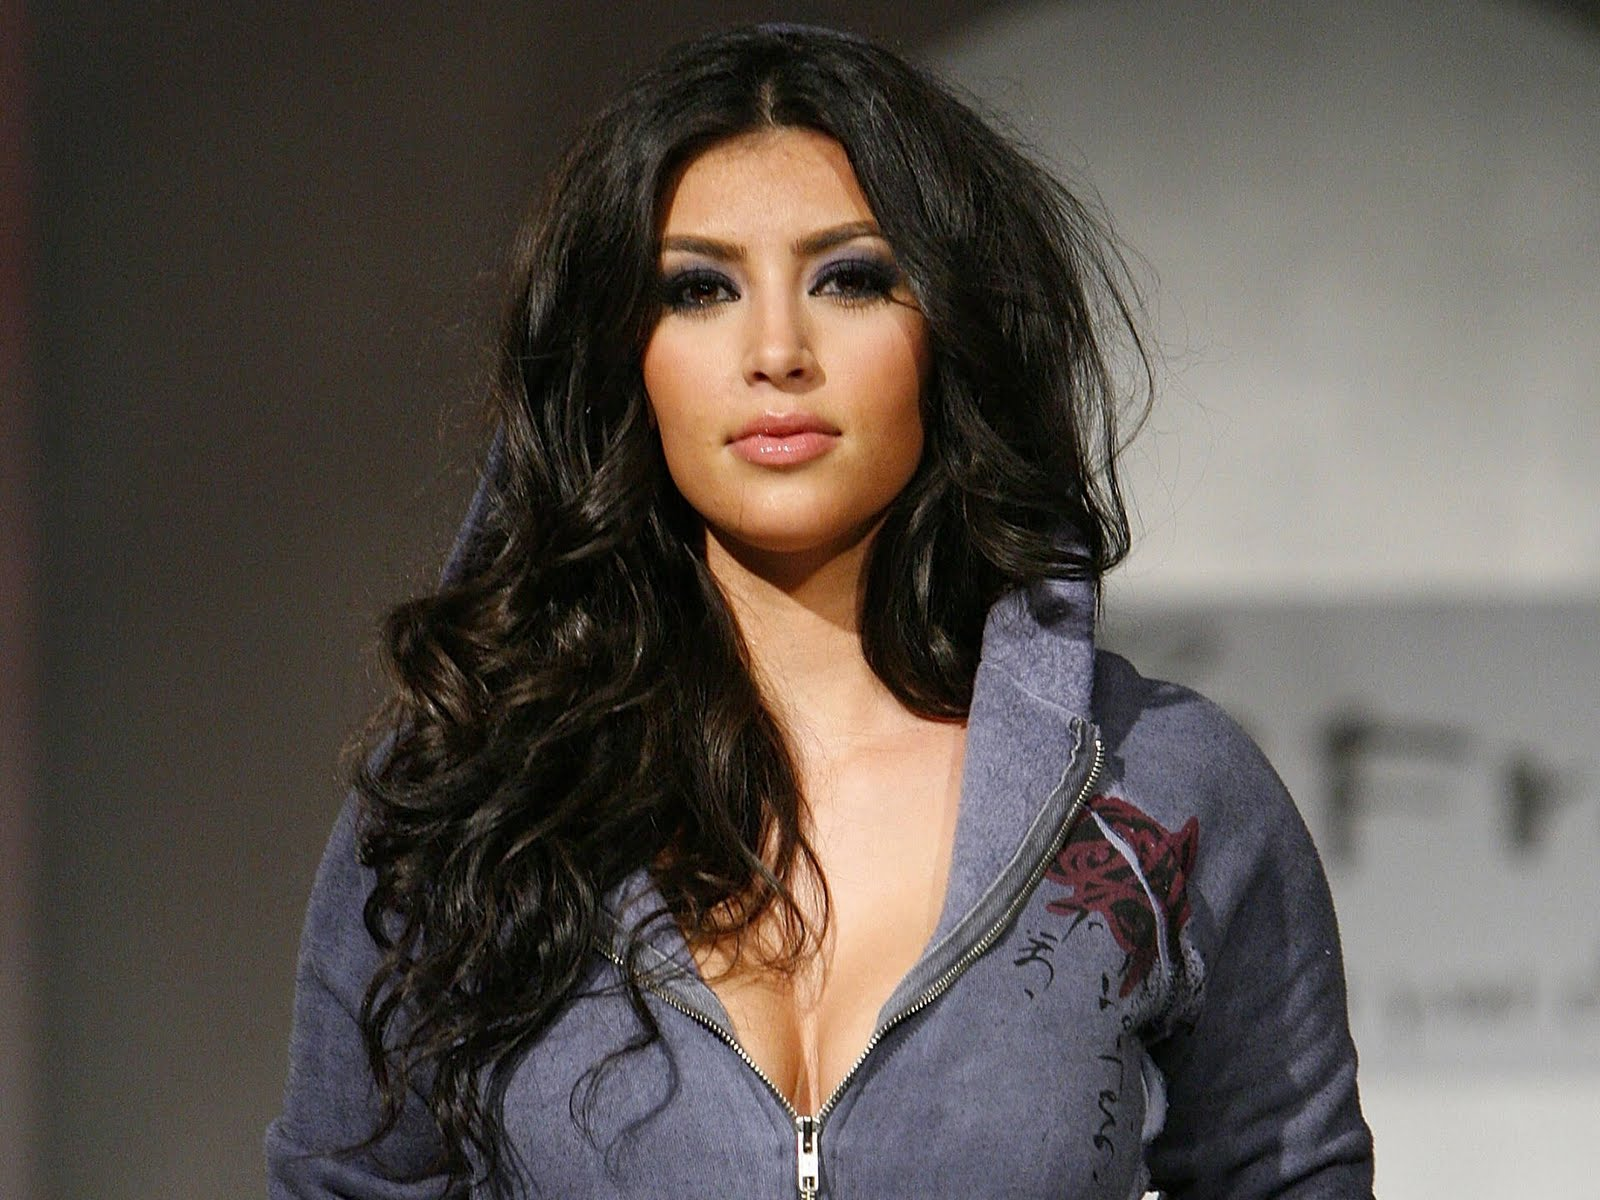 Hot Fashion 2011: Kim Kardashian Close Up Photos